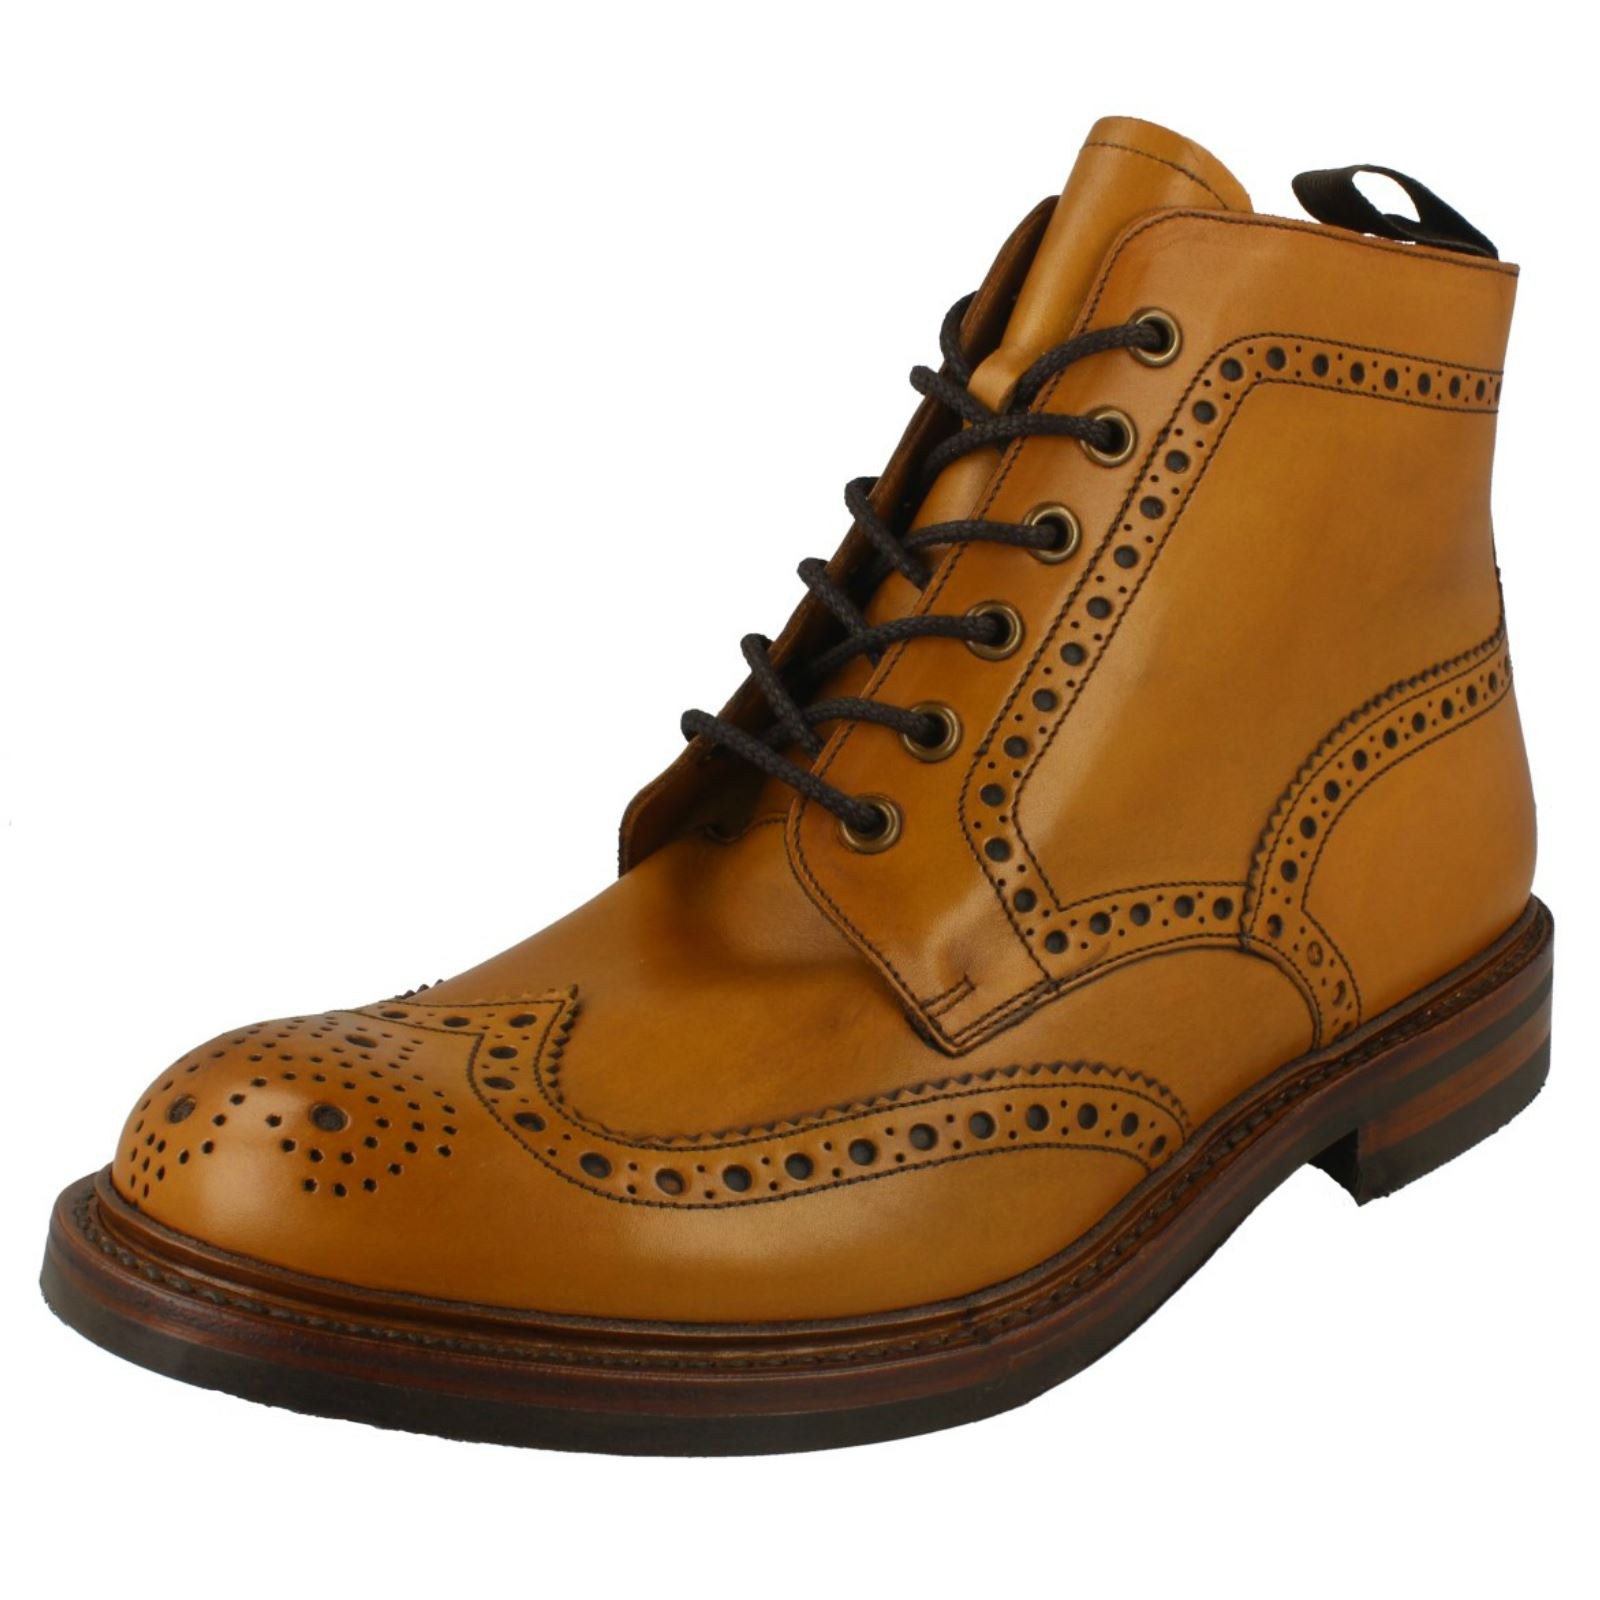 Loake Mens Brogue Lace Up Boots Bedale